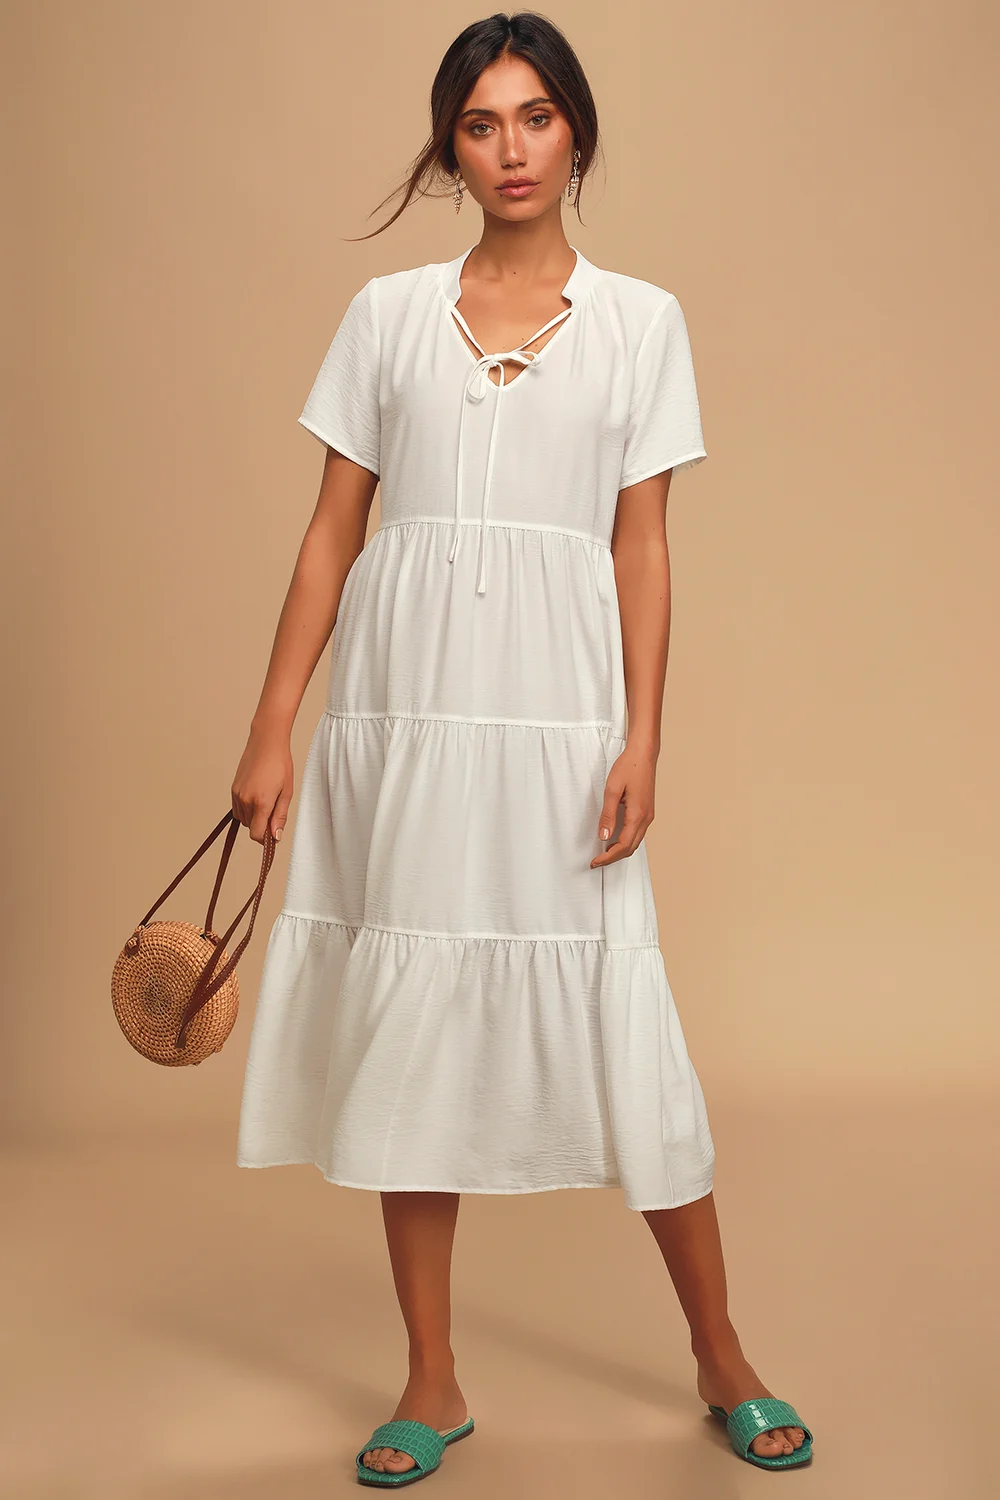 Lovely To Meet You White Short Sleeve Tiered Midi Dress Midi Short Sleeve Dress White Short Dress Long White Dress [ 1500 x 1000 Pixel ]